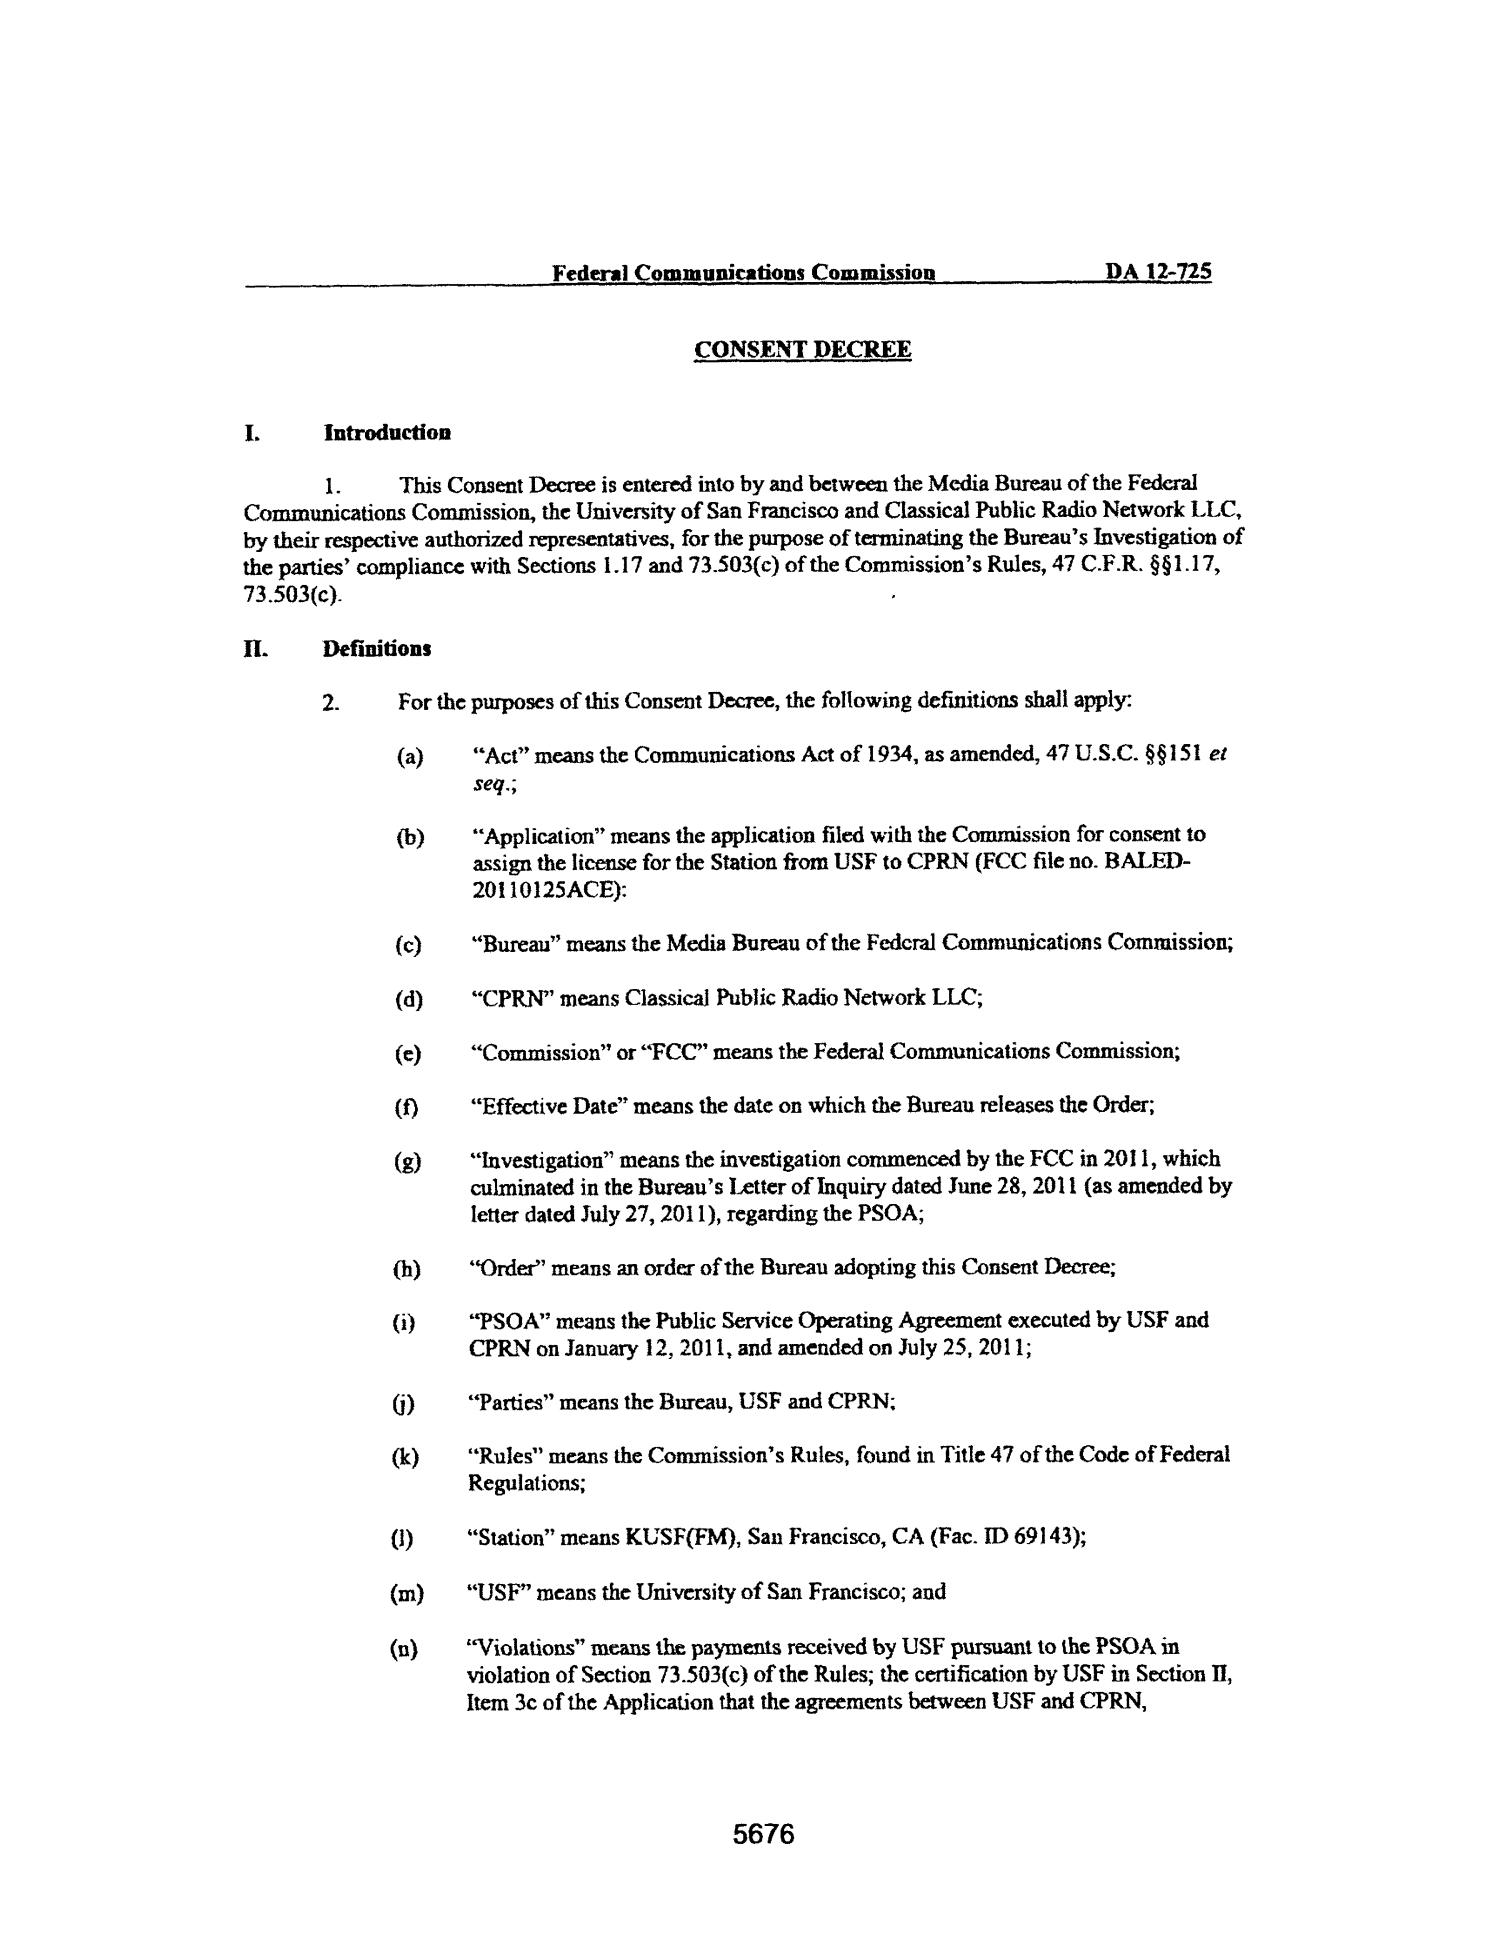 FCC Record, Volume 27, No. 7, Pages 5674 to 6652, May 23 - June 15, 2012                                                                                                      5676